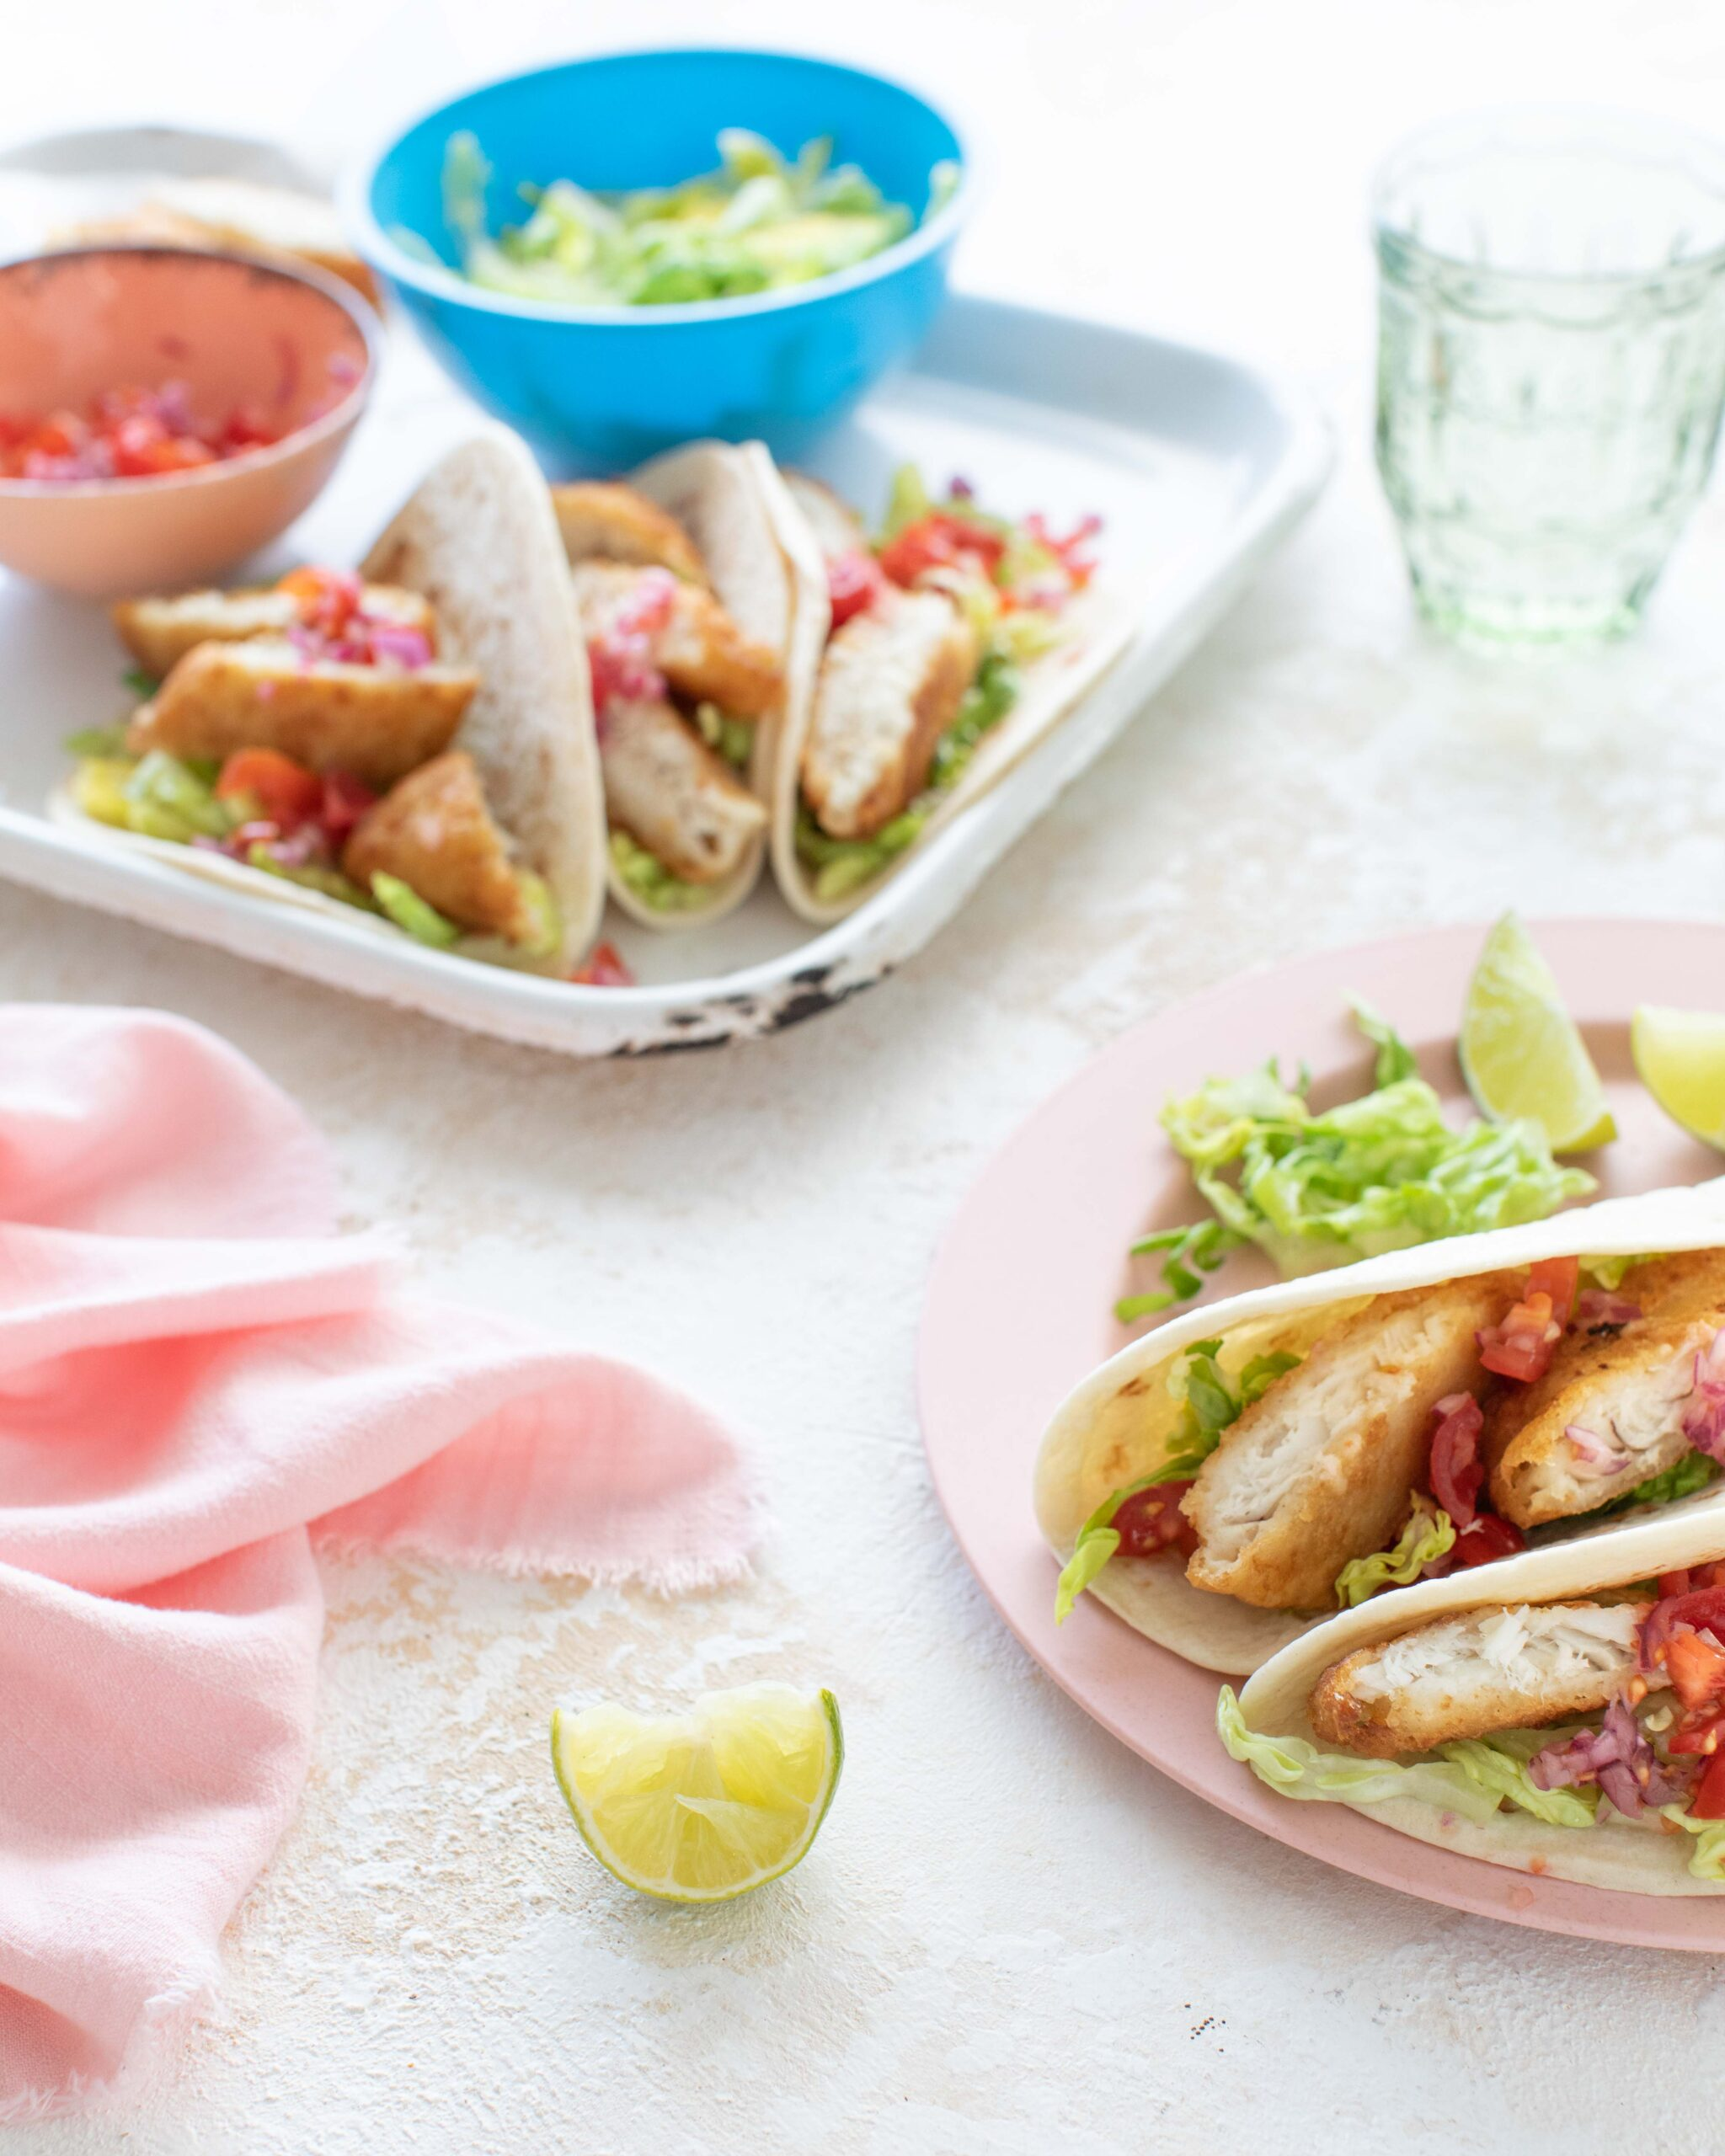 Irish pale ale battered cod tacos from Donegal catch